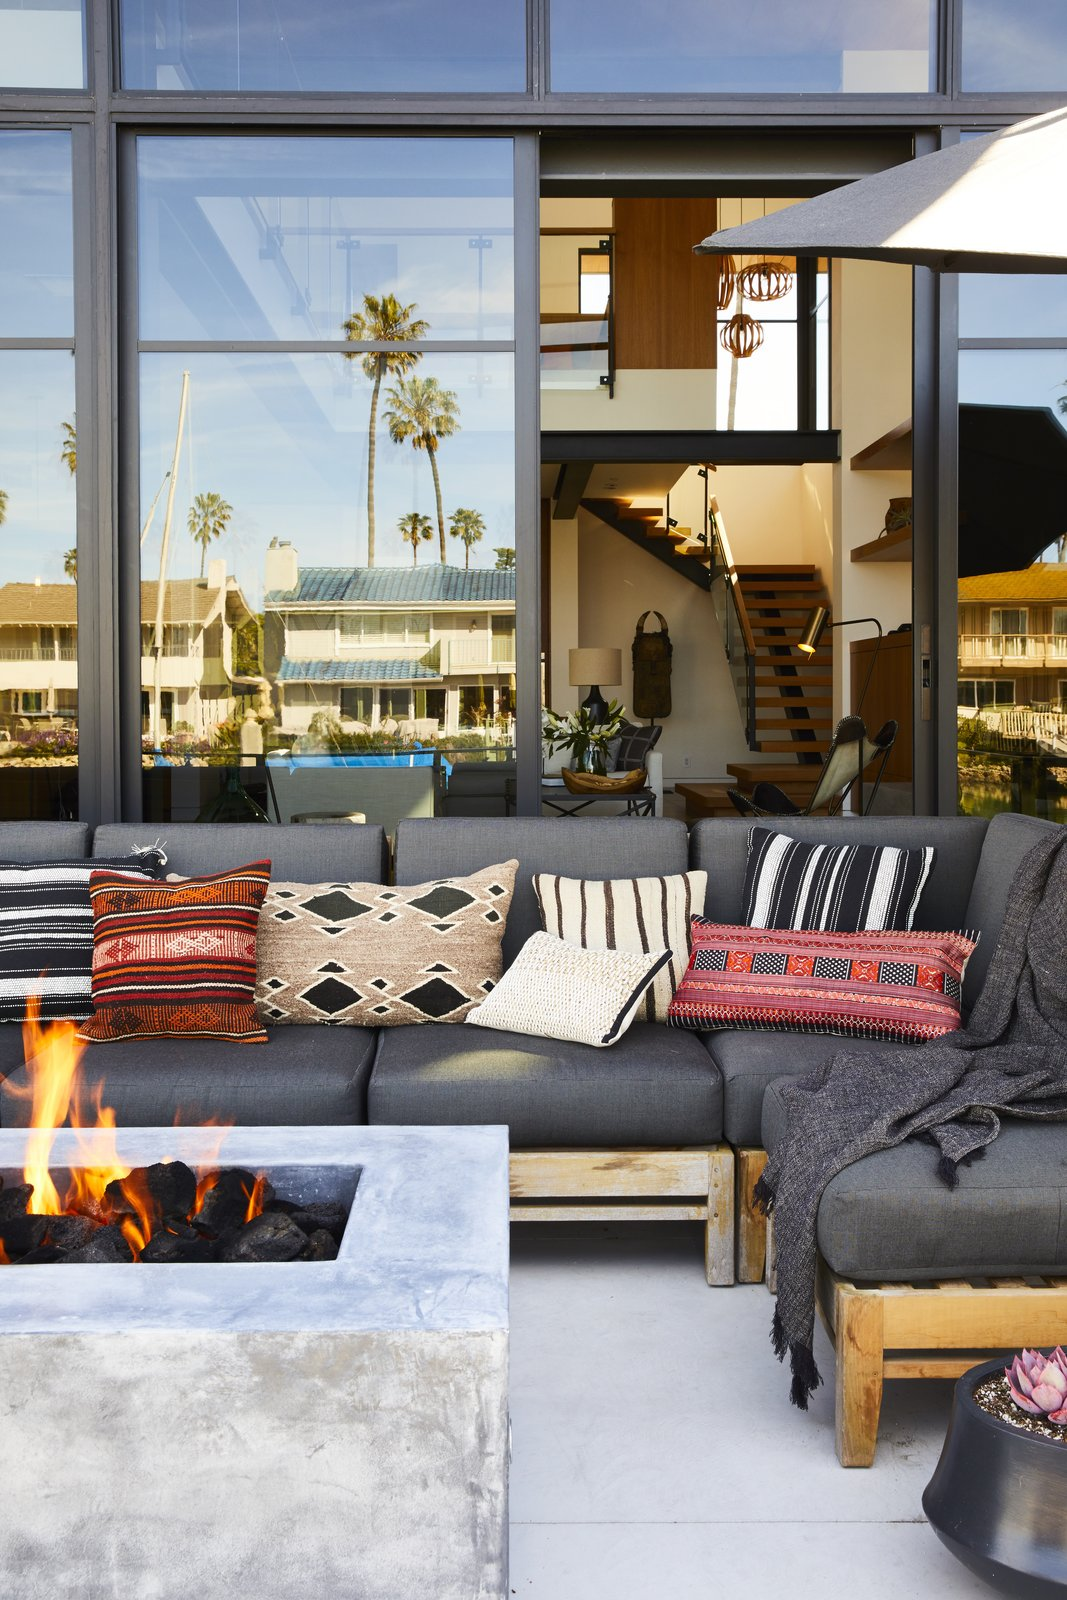 Outdoor, Back Yard, Concrete Patio, Porch, Deck, and Planters Patio, Porch, Deck  Photo 4 of 19 in 18 Modern Fireplaces and Fire Pits to Inspire Outdoor Living from This Renovation Will Make You Rethink the Typical Look of a California Beach House